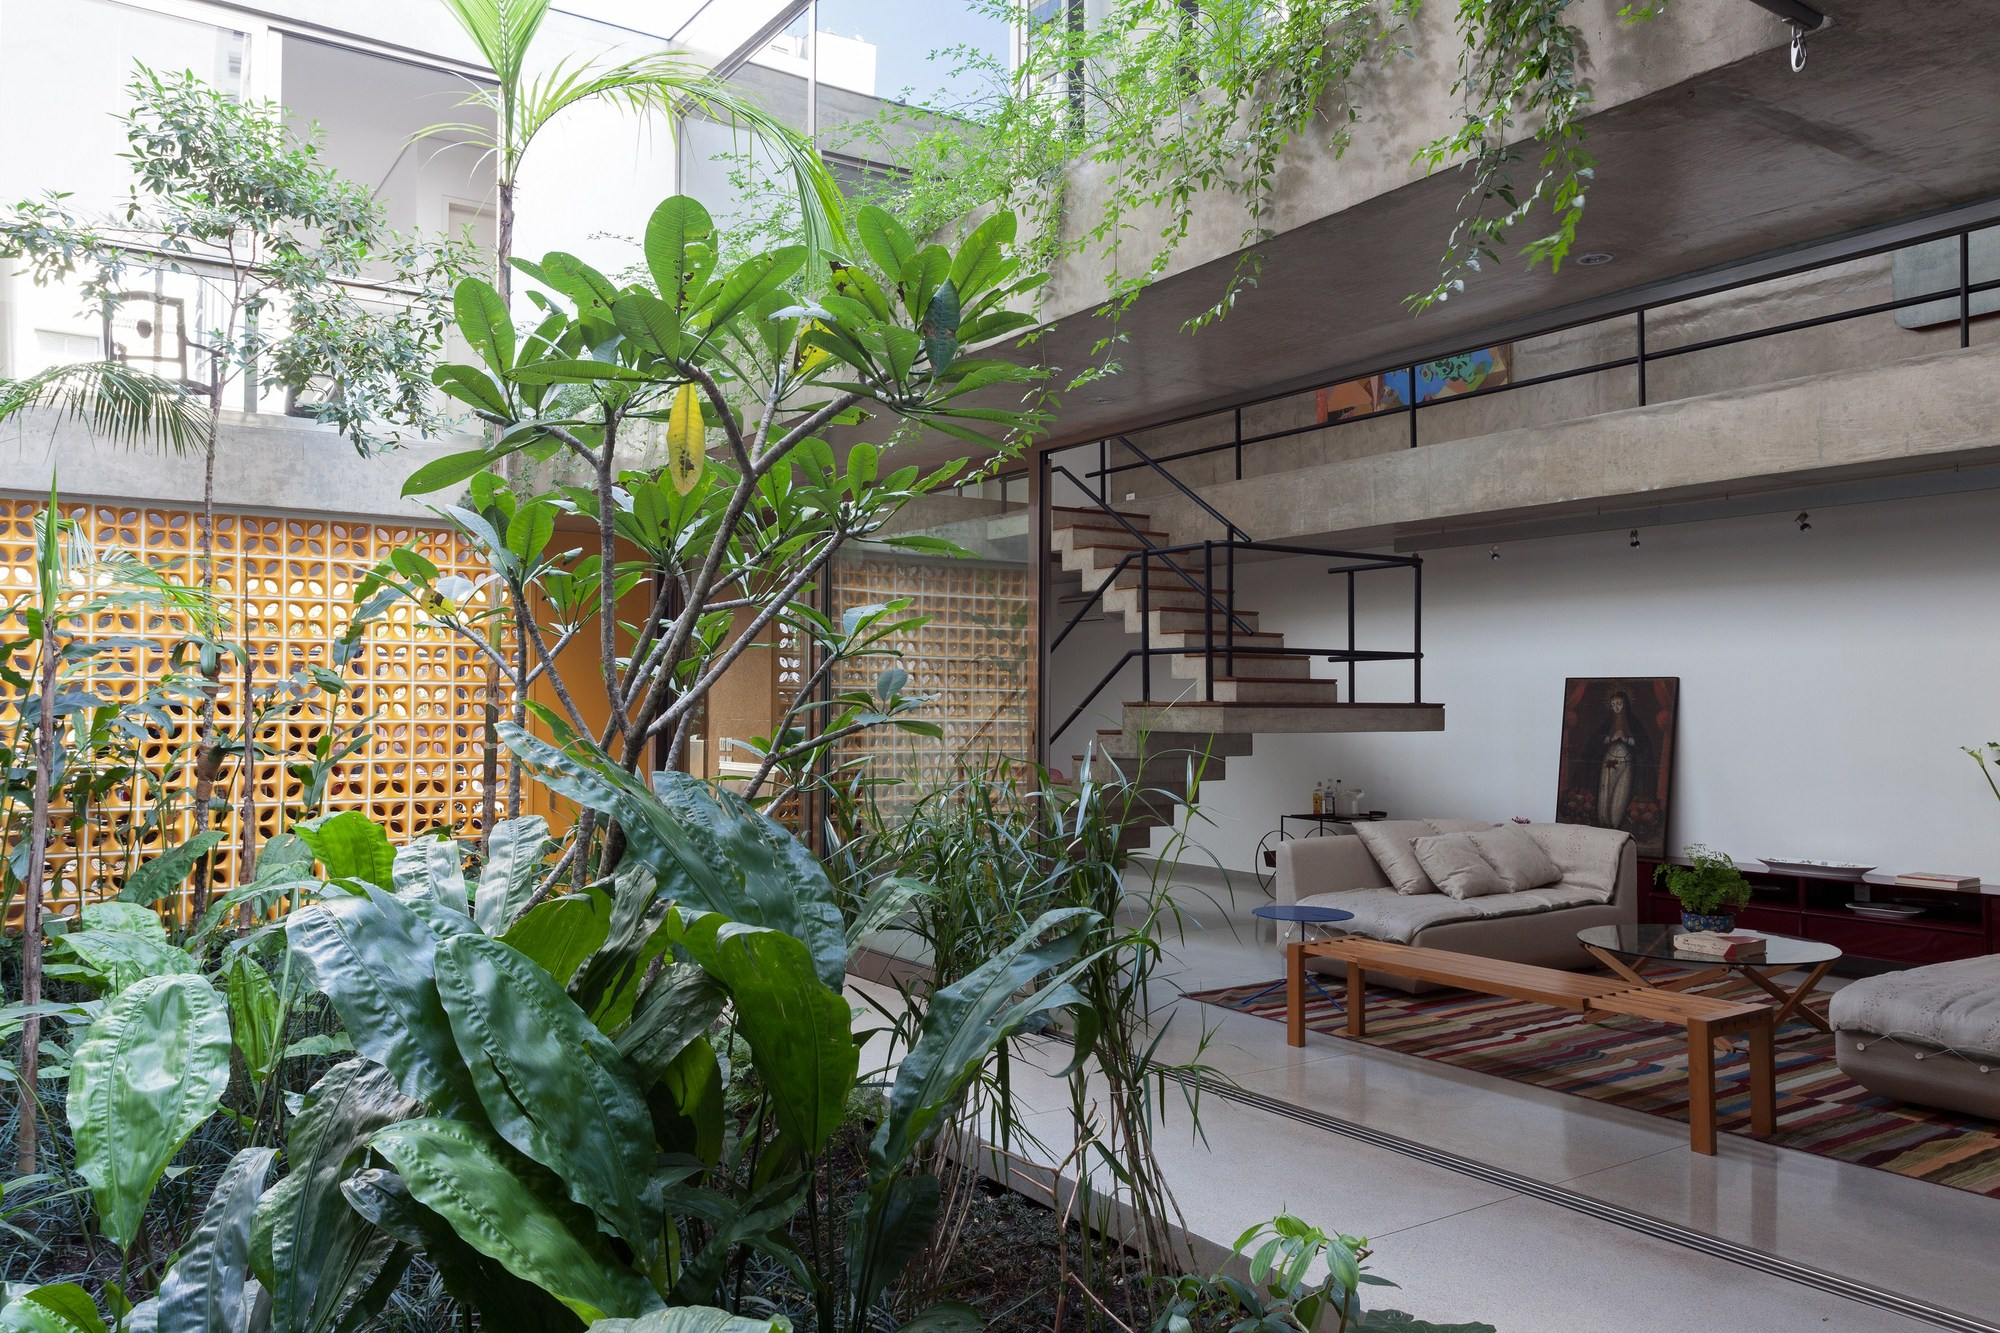 Jardins house cr2 arquitetura archdaily for Architecture jardin